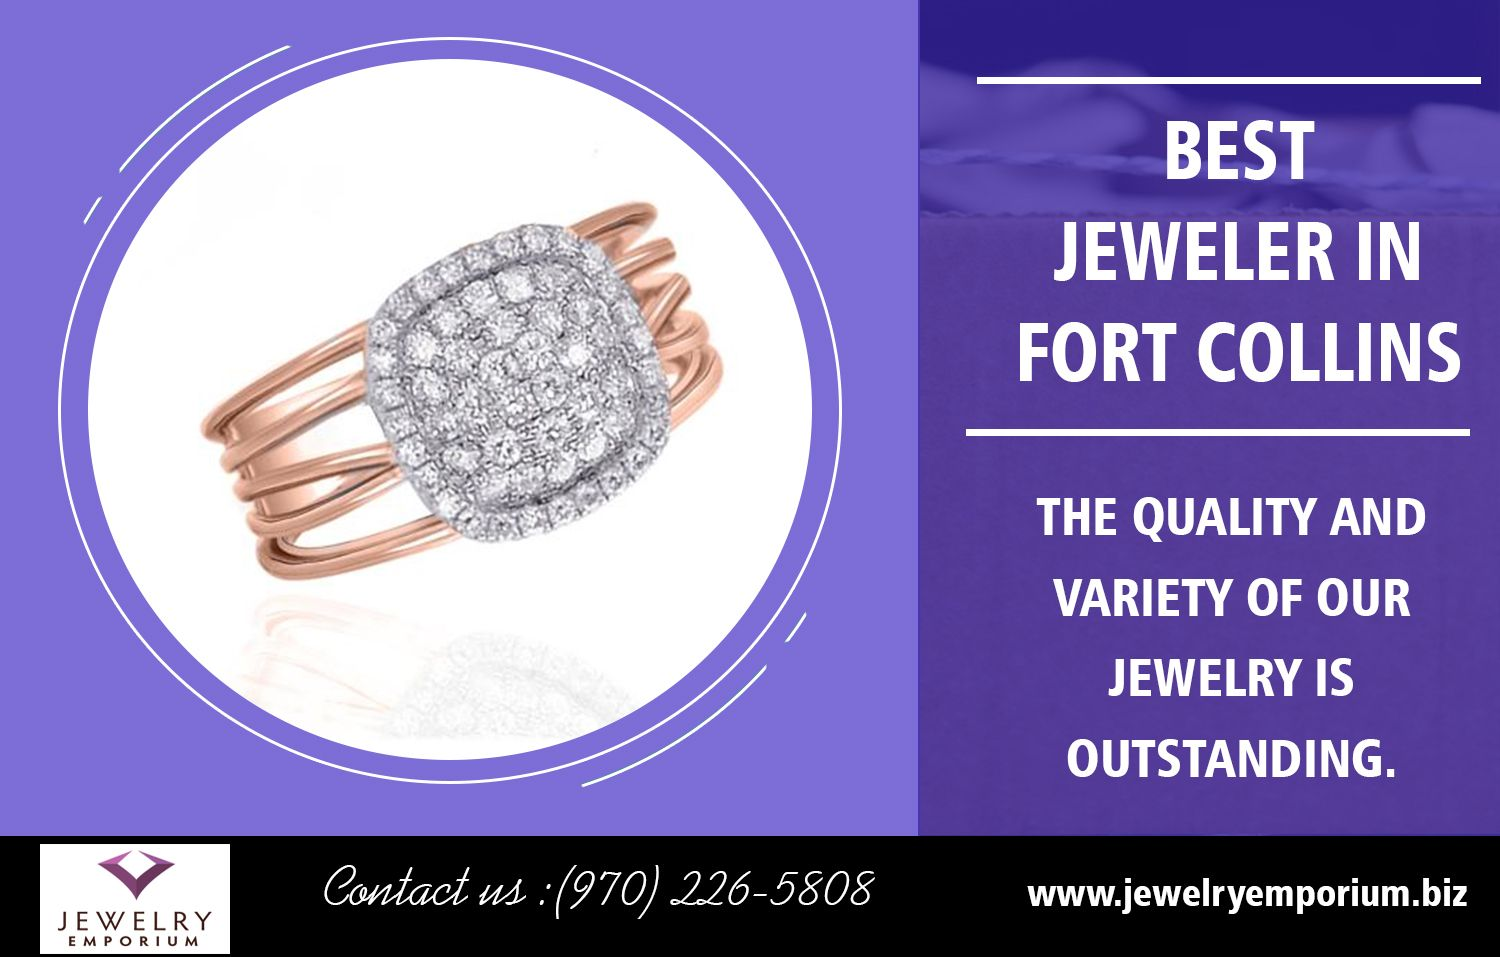 37++ Jewelry stores fort collins co ideas